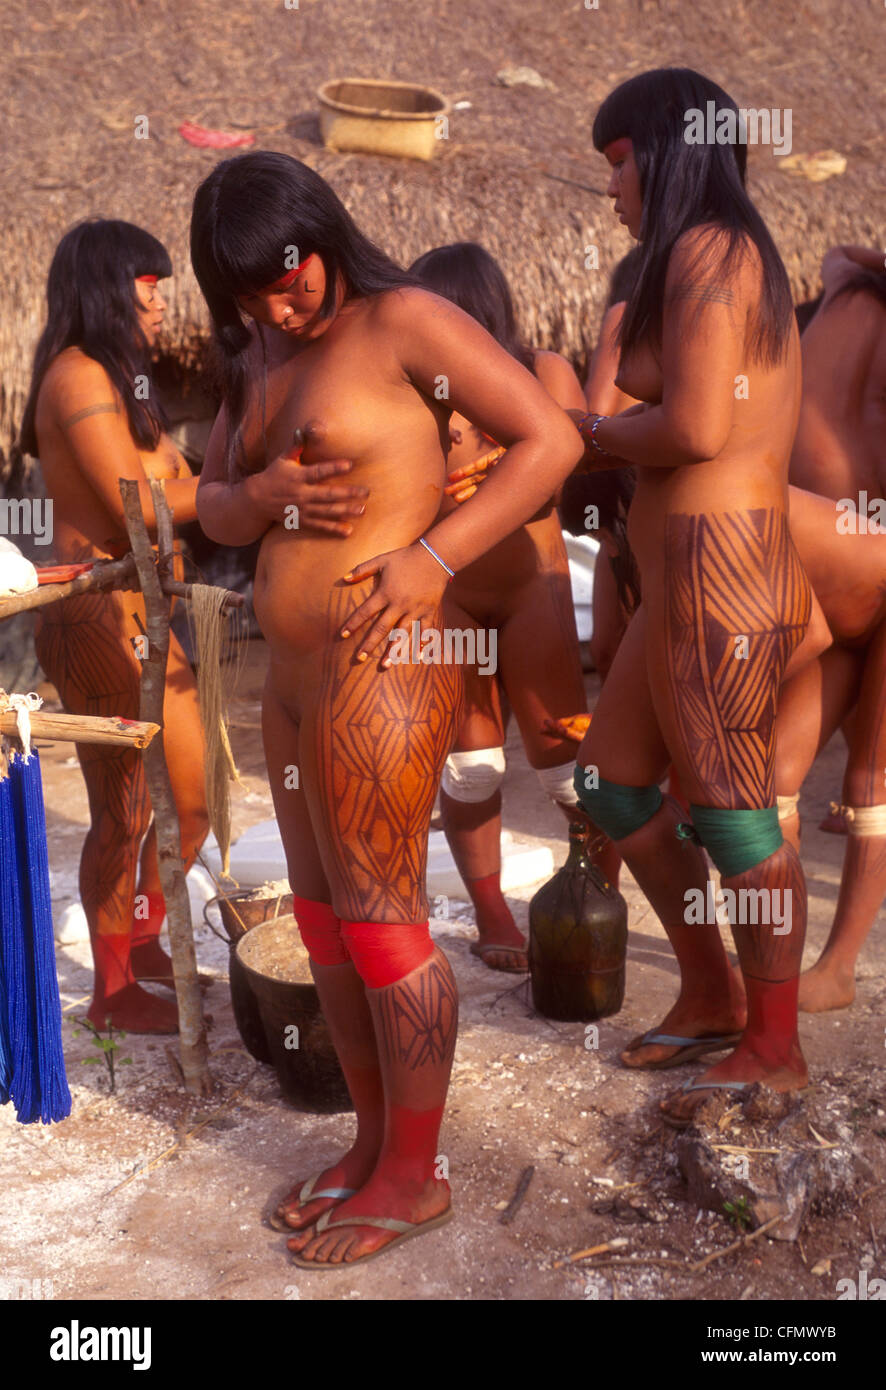 Tribal amazon women fucking naked pictures